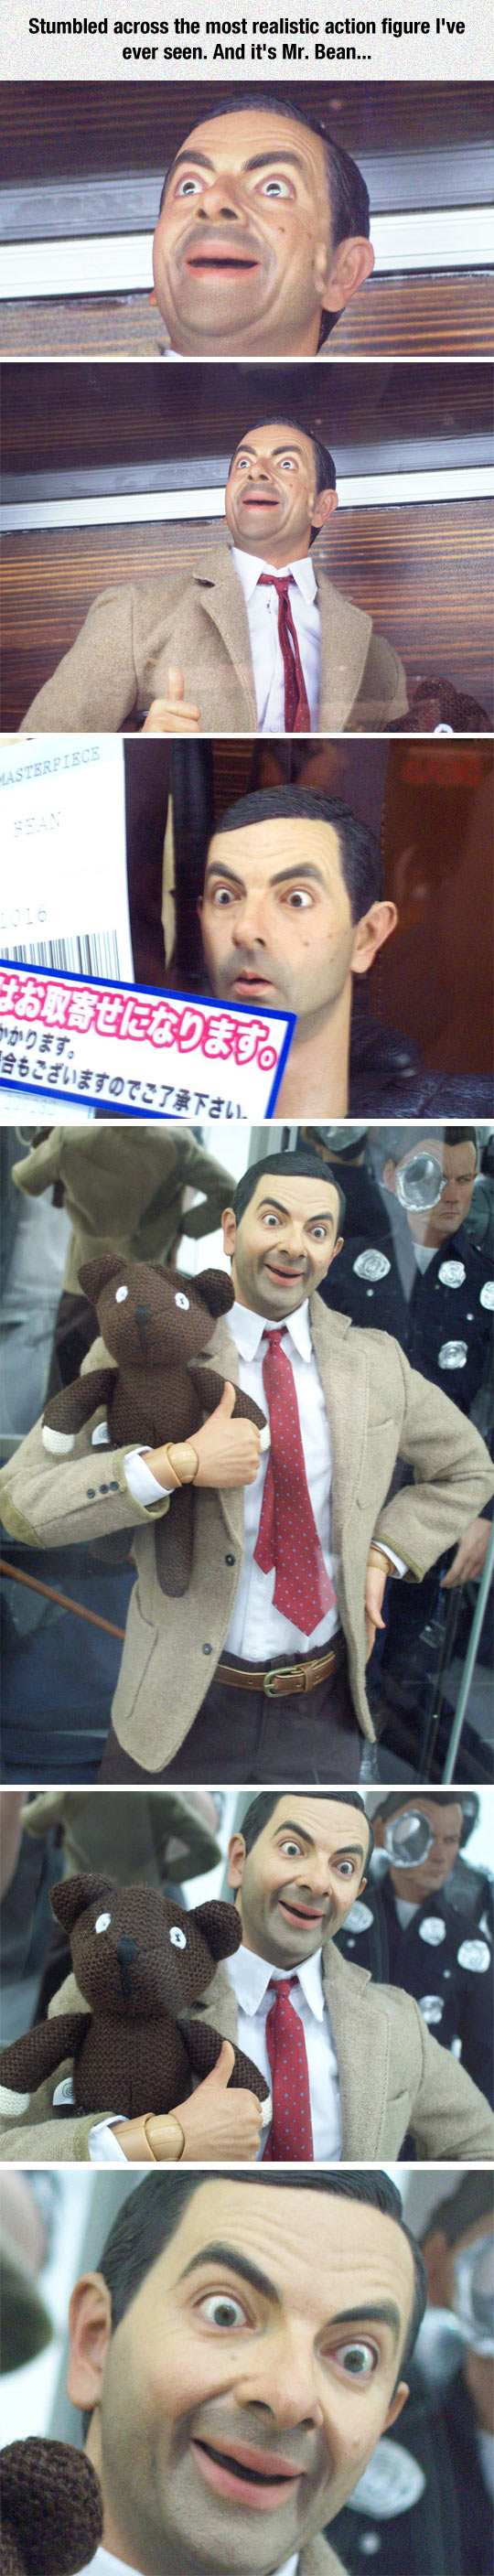 The Most Realistic Action Figure